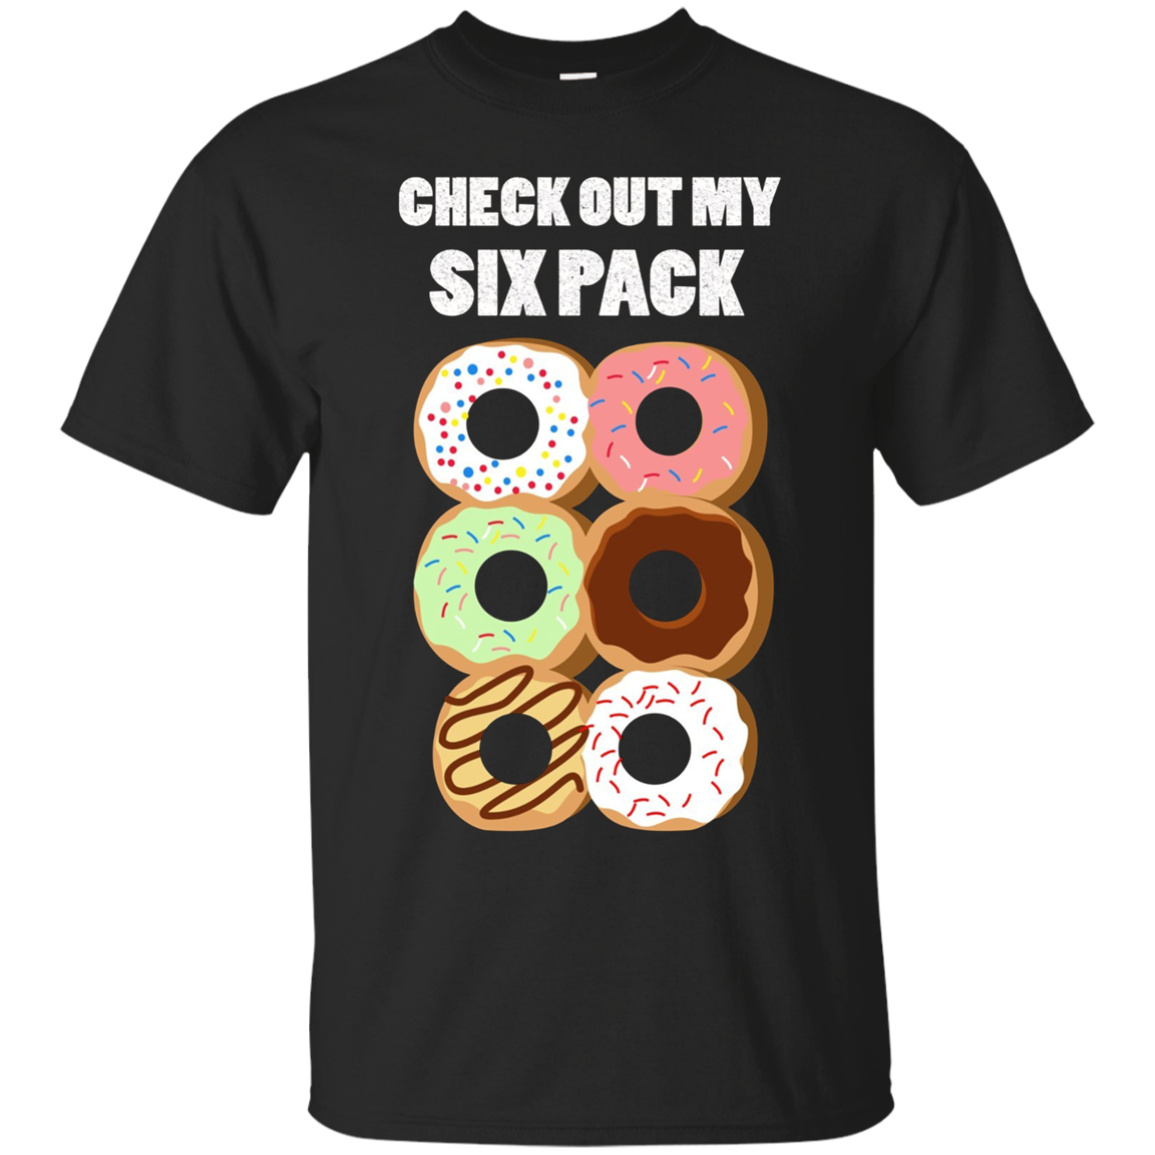 Check Out My Six Pack - Funny Donut Workout Abs T-Shirt